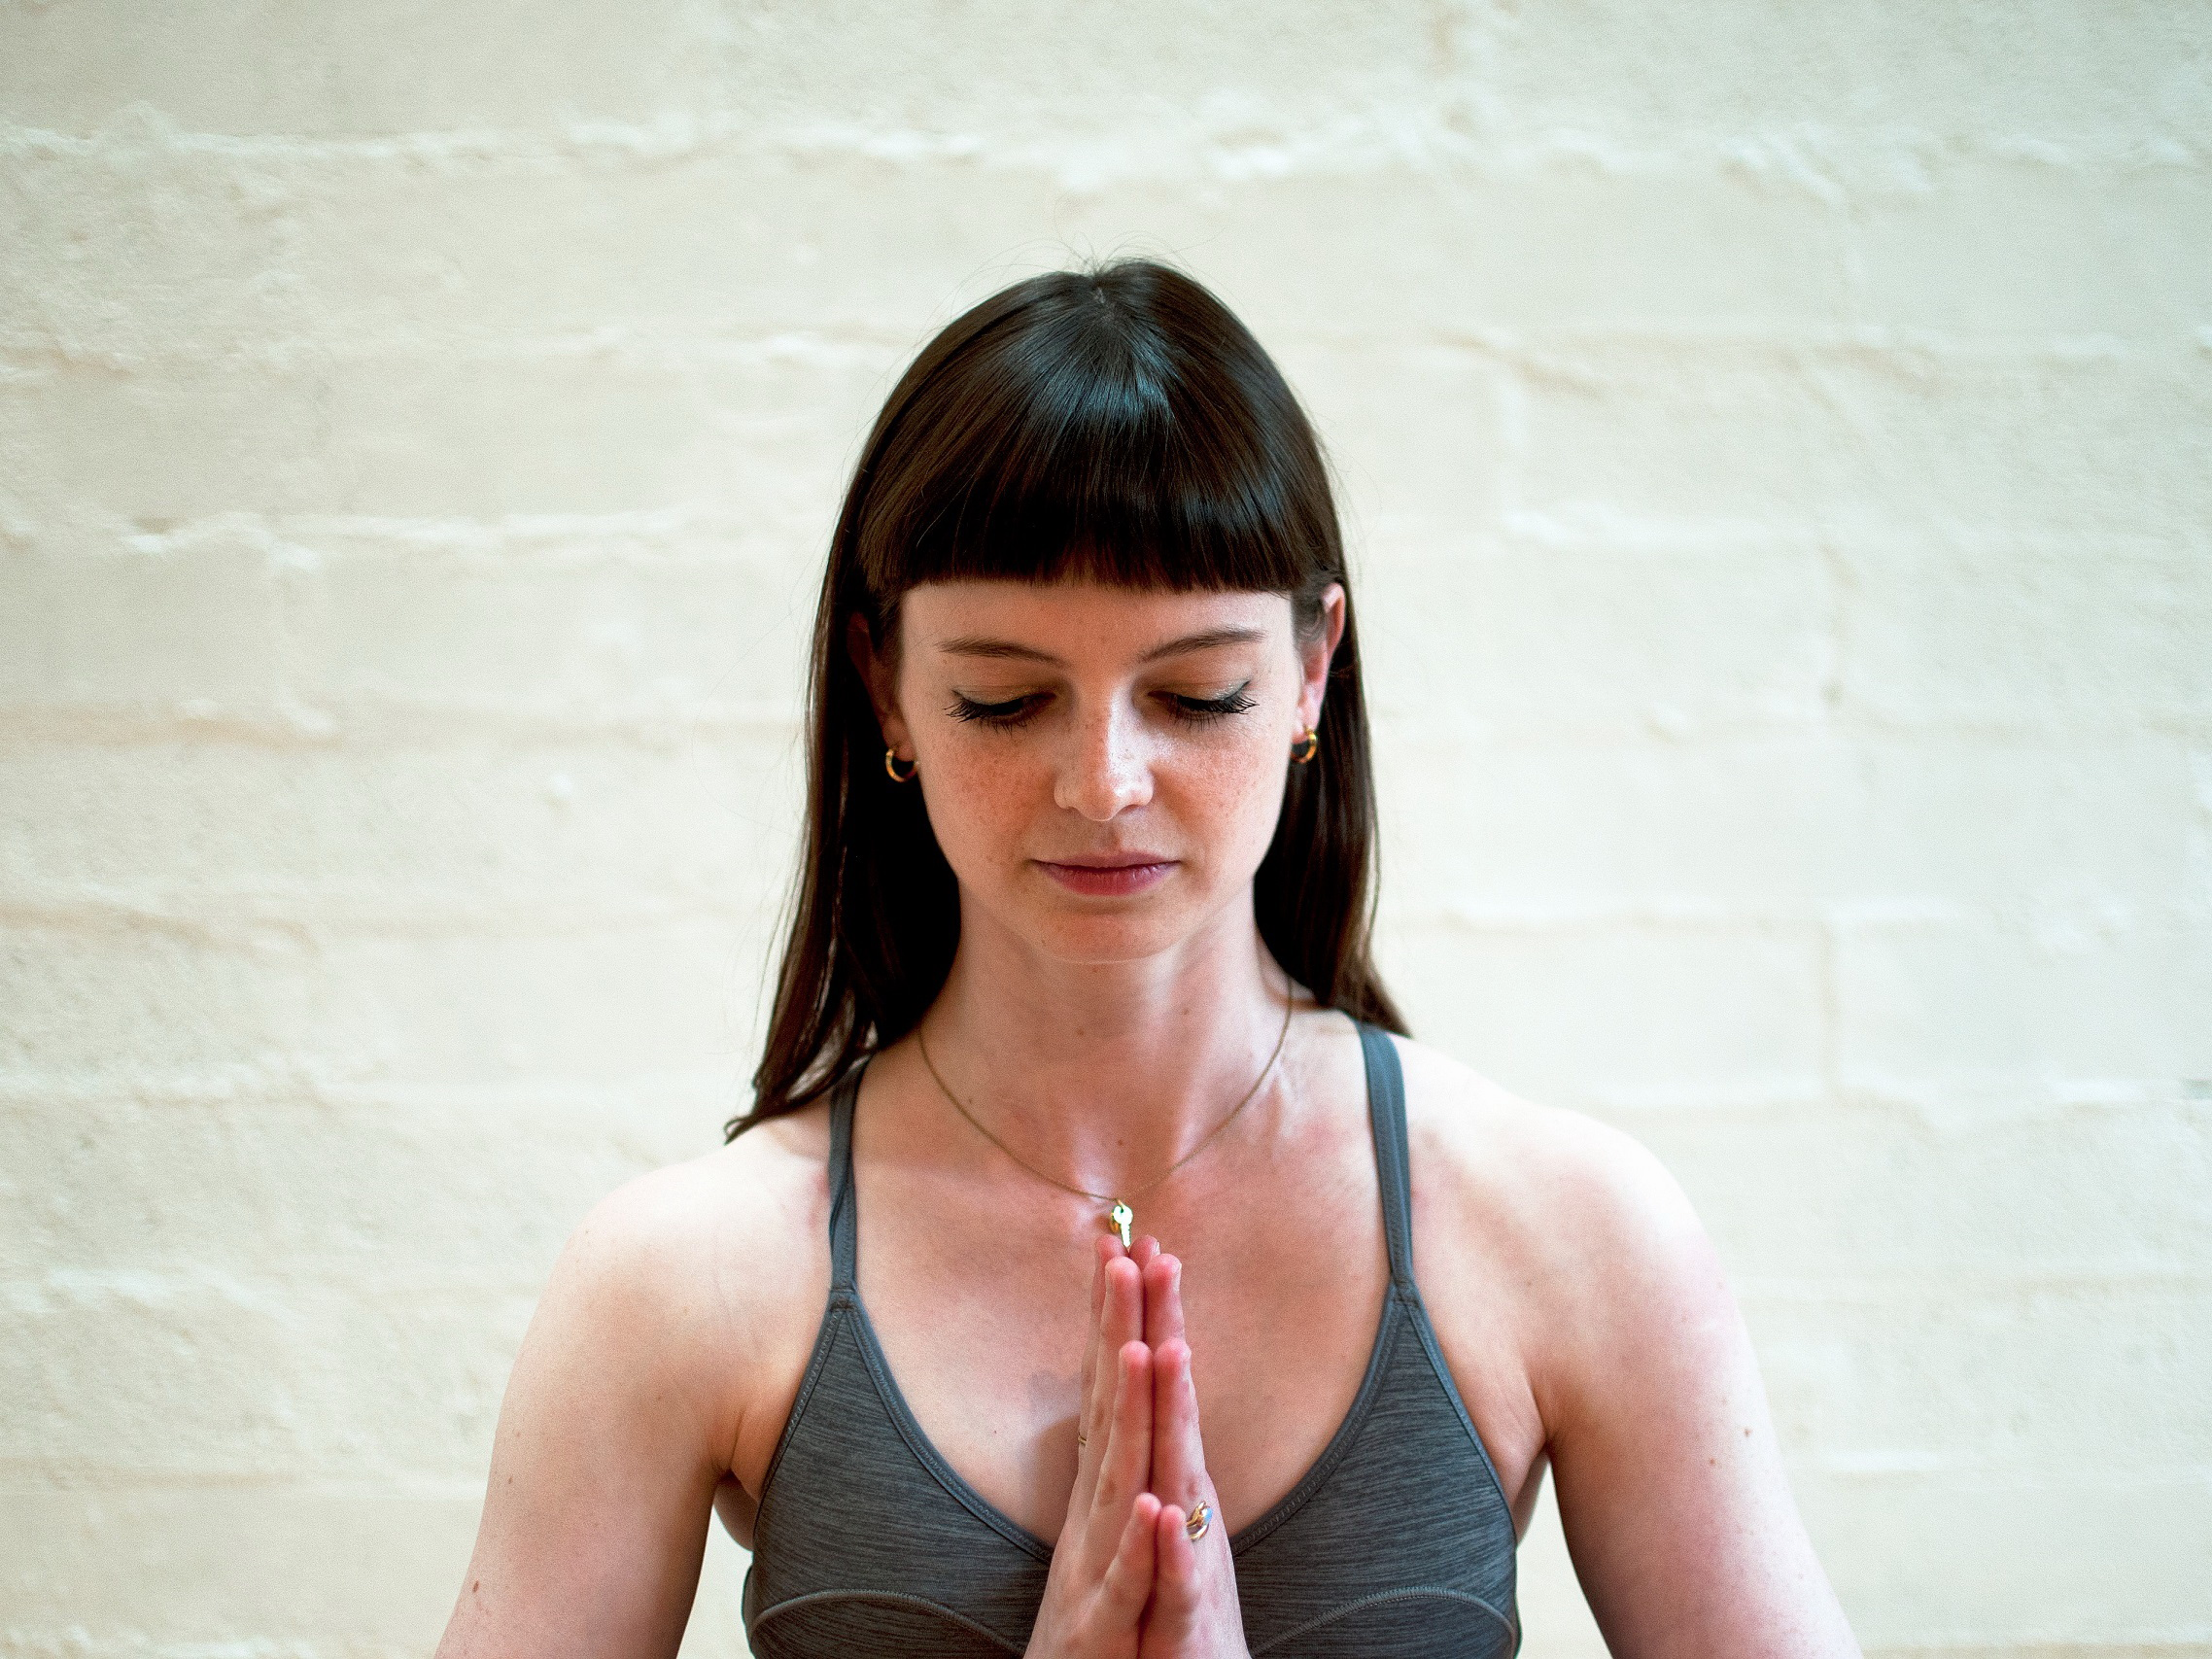 Aisling Cook(Yoga /STEAM) - Aisling is from Glasgow, Scotland. She is a professional dancer and Pilates & Yoga instructor.Prior to her move to Japan, Aisling worked as a ballet dancer in London for nearly 10 years, both performing and choreographing extensively. In addition, she has been teaching Pilates, Yoga and dance as well as working in dance education.She enjoys sharing her passion in dance and movement, and is continually developing and evolving her teaching practice.When not on the mat or in the studio; Aisling enjoys travelling, movies and eating out.